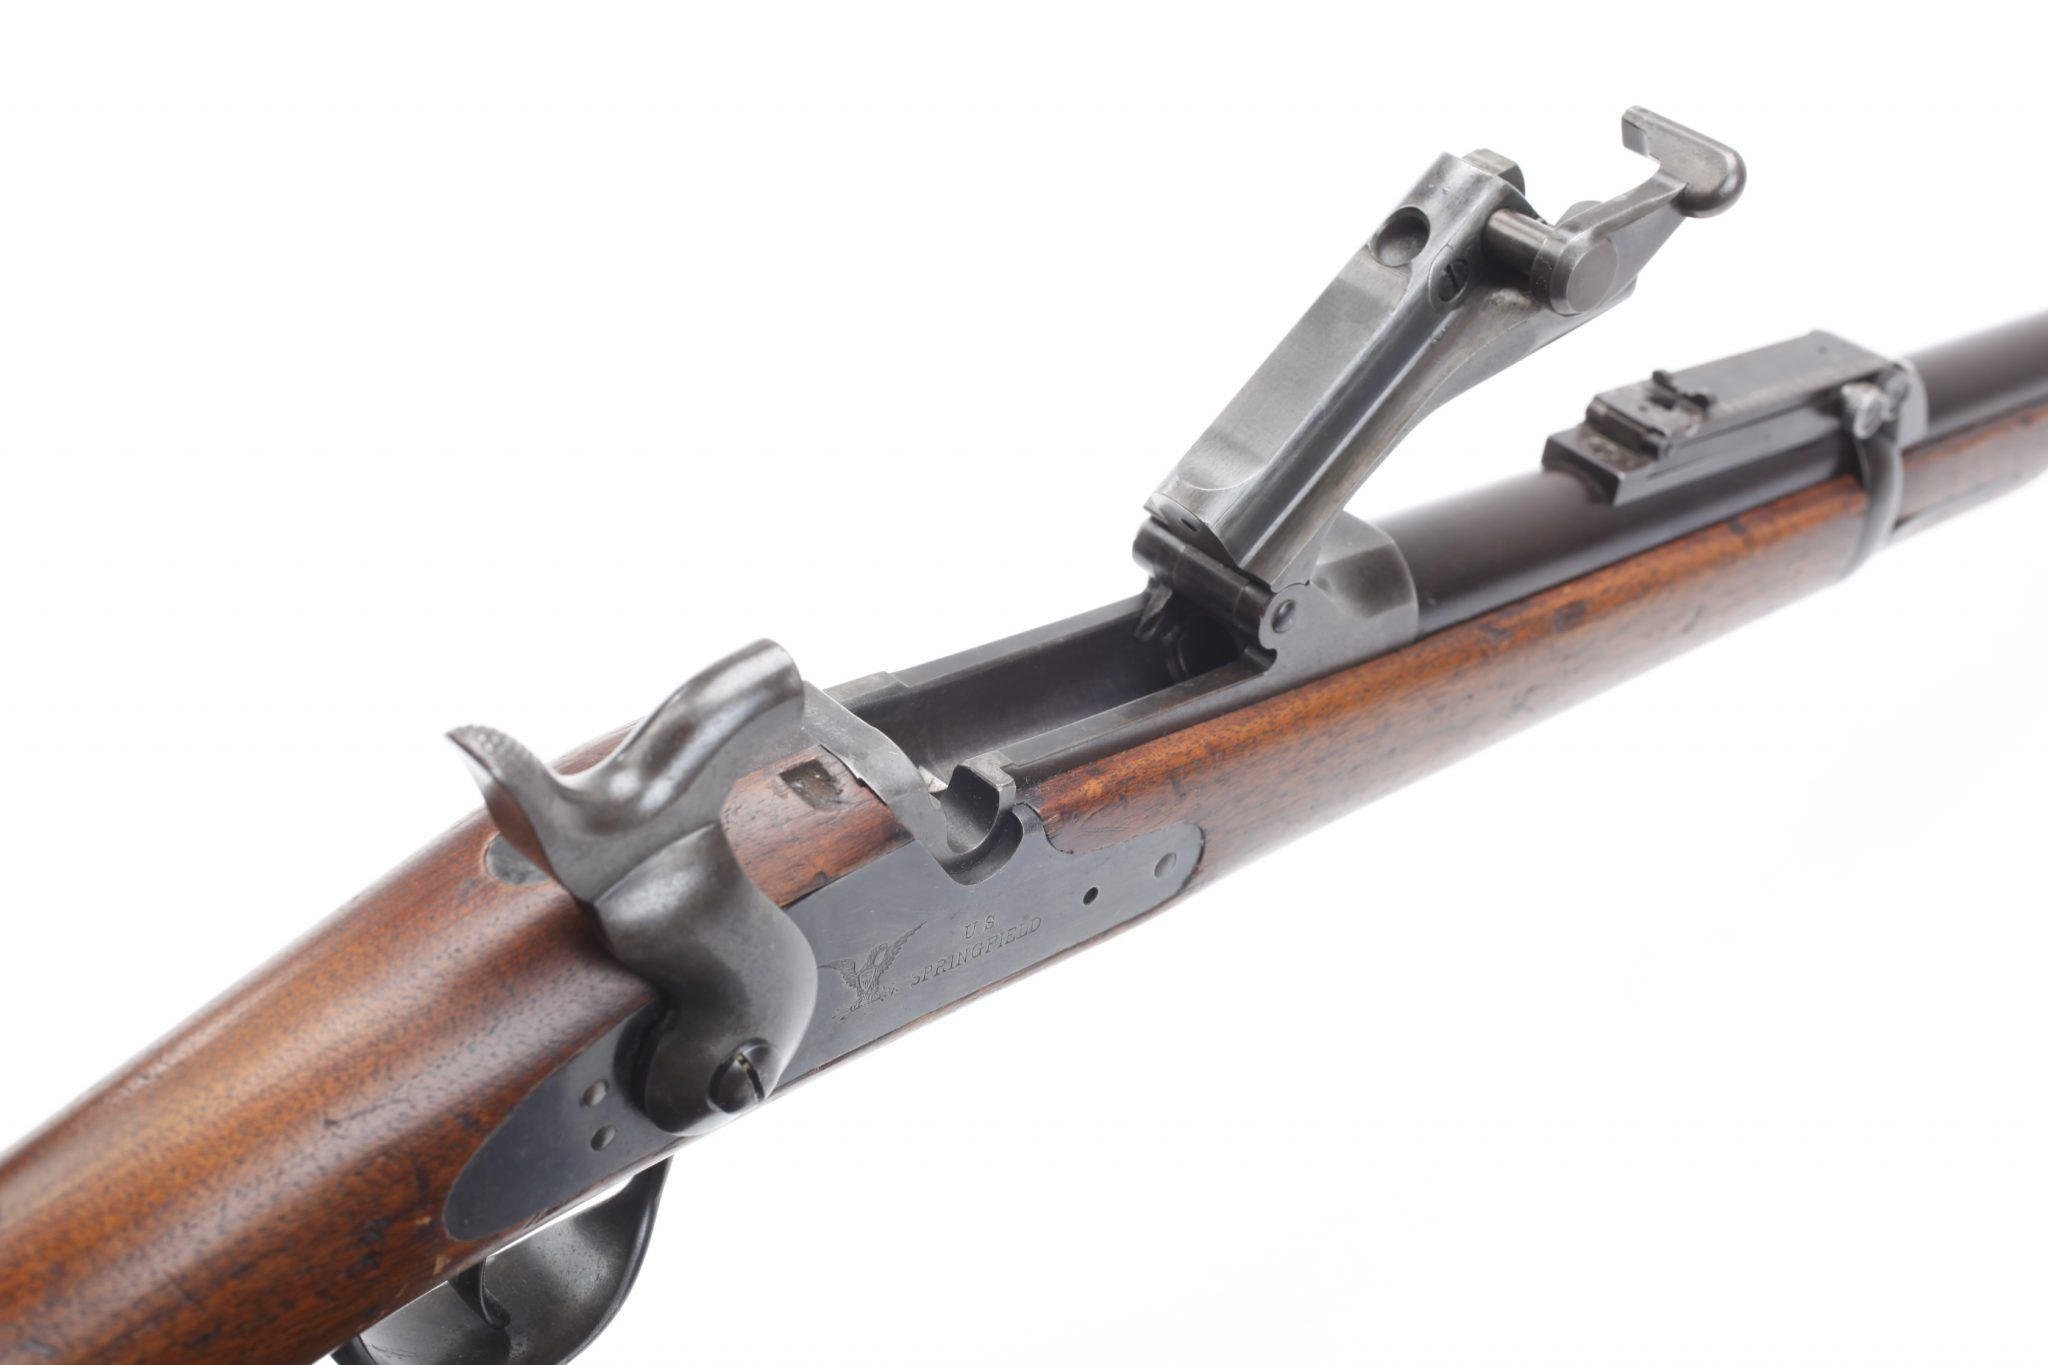 The Springfield Model 1873 Rifle - The Campaign for the